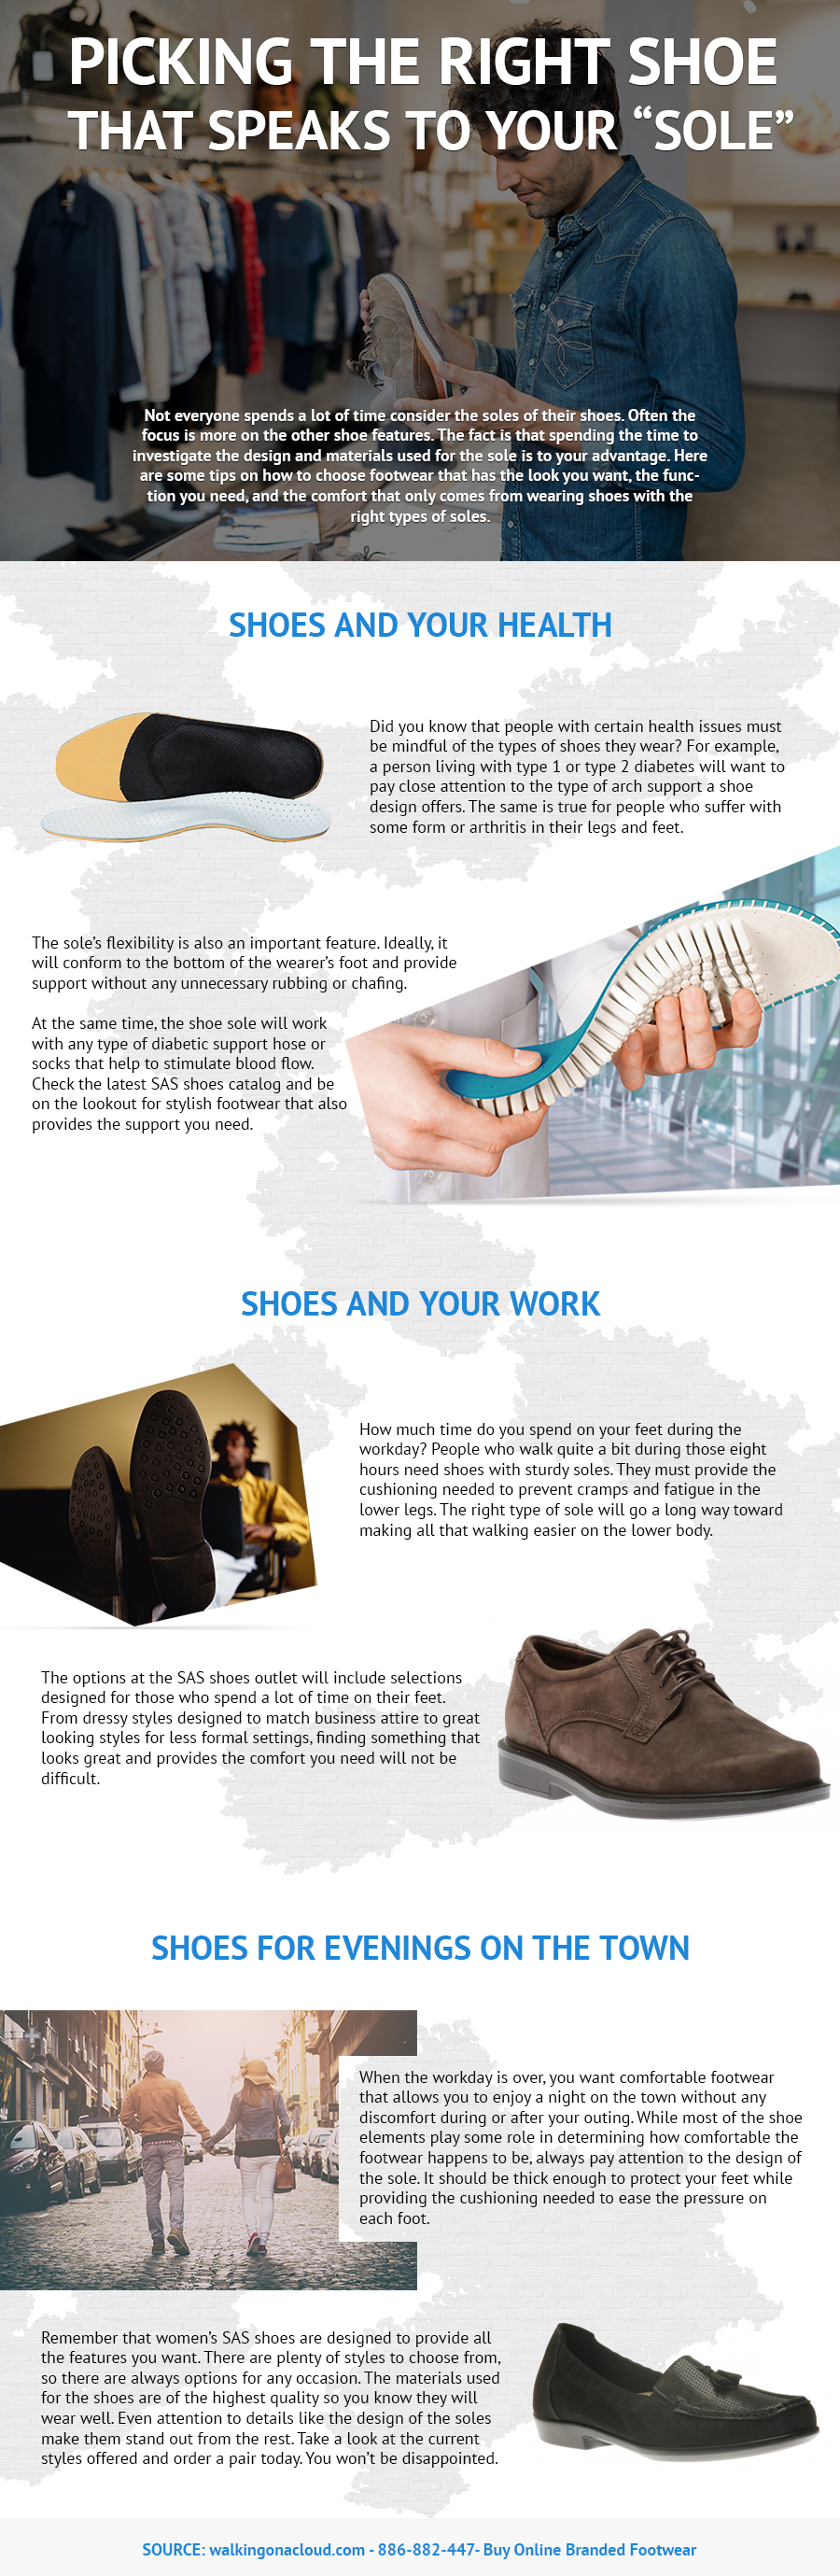 Picking-Right-Shoe-That-Speaks-to-Your-Sole